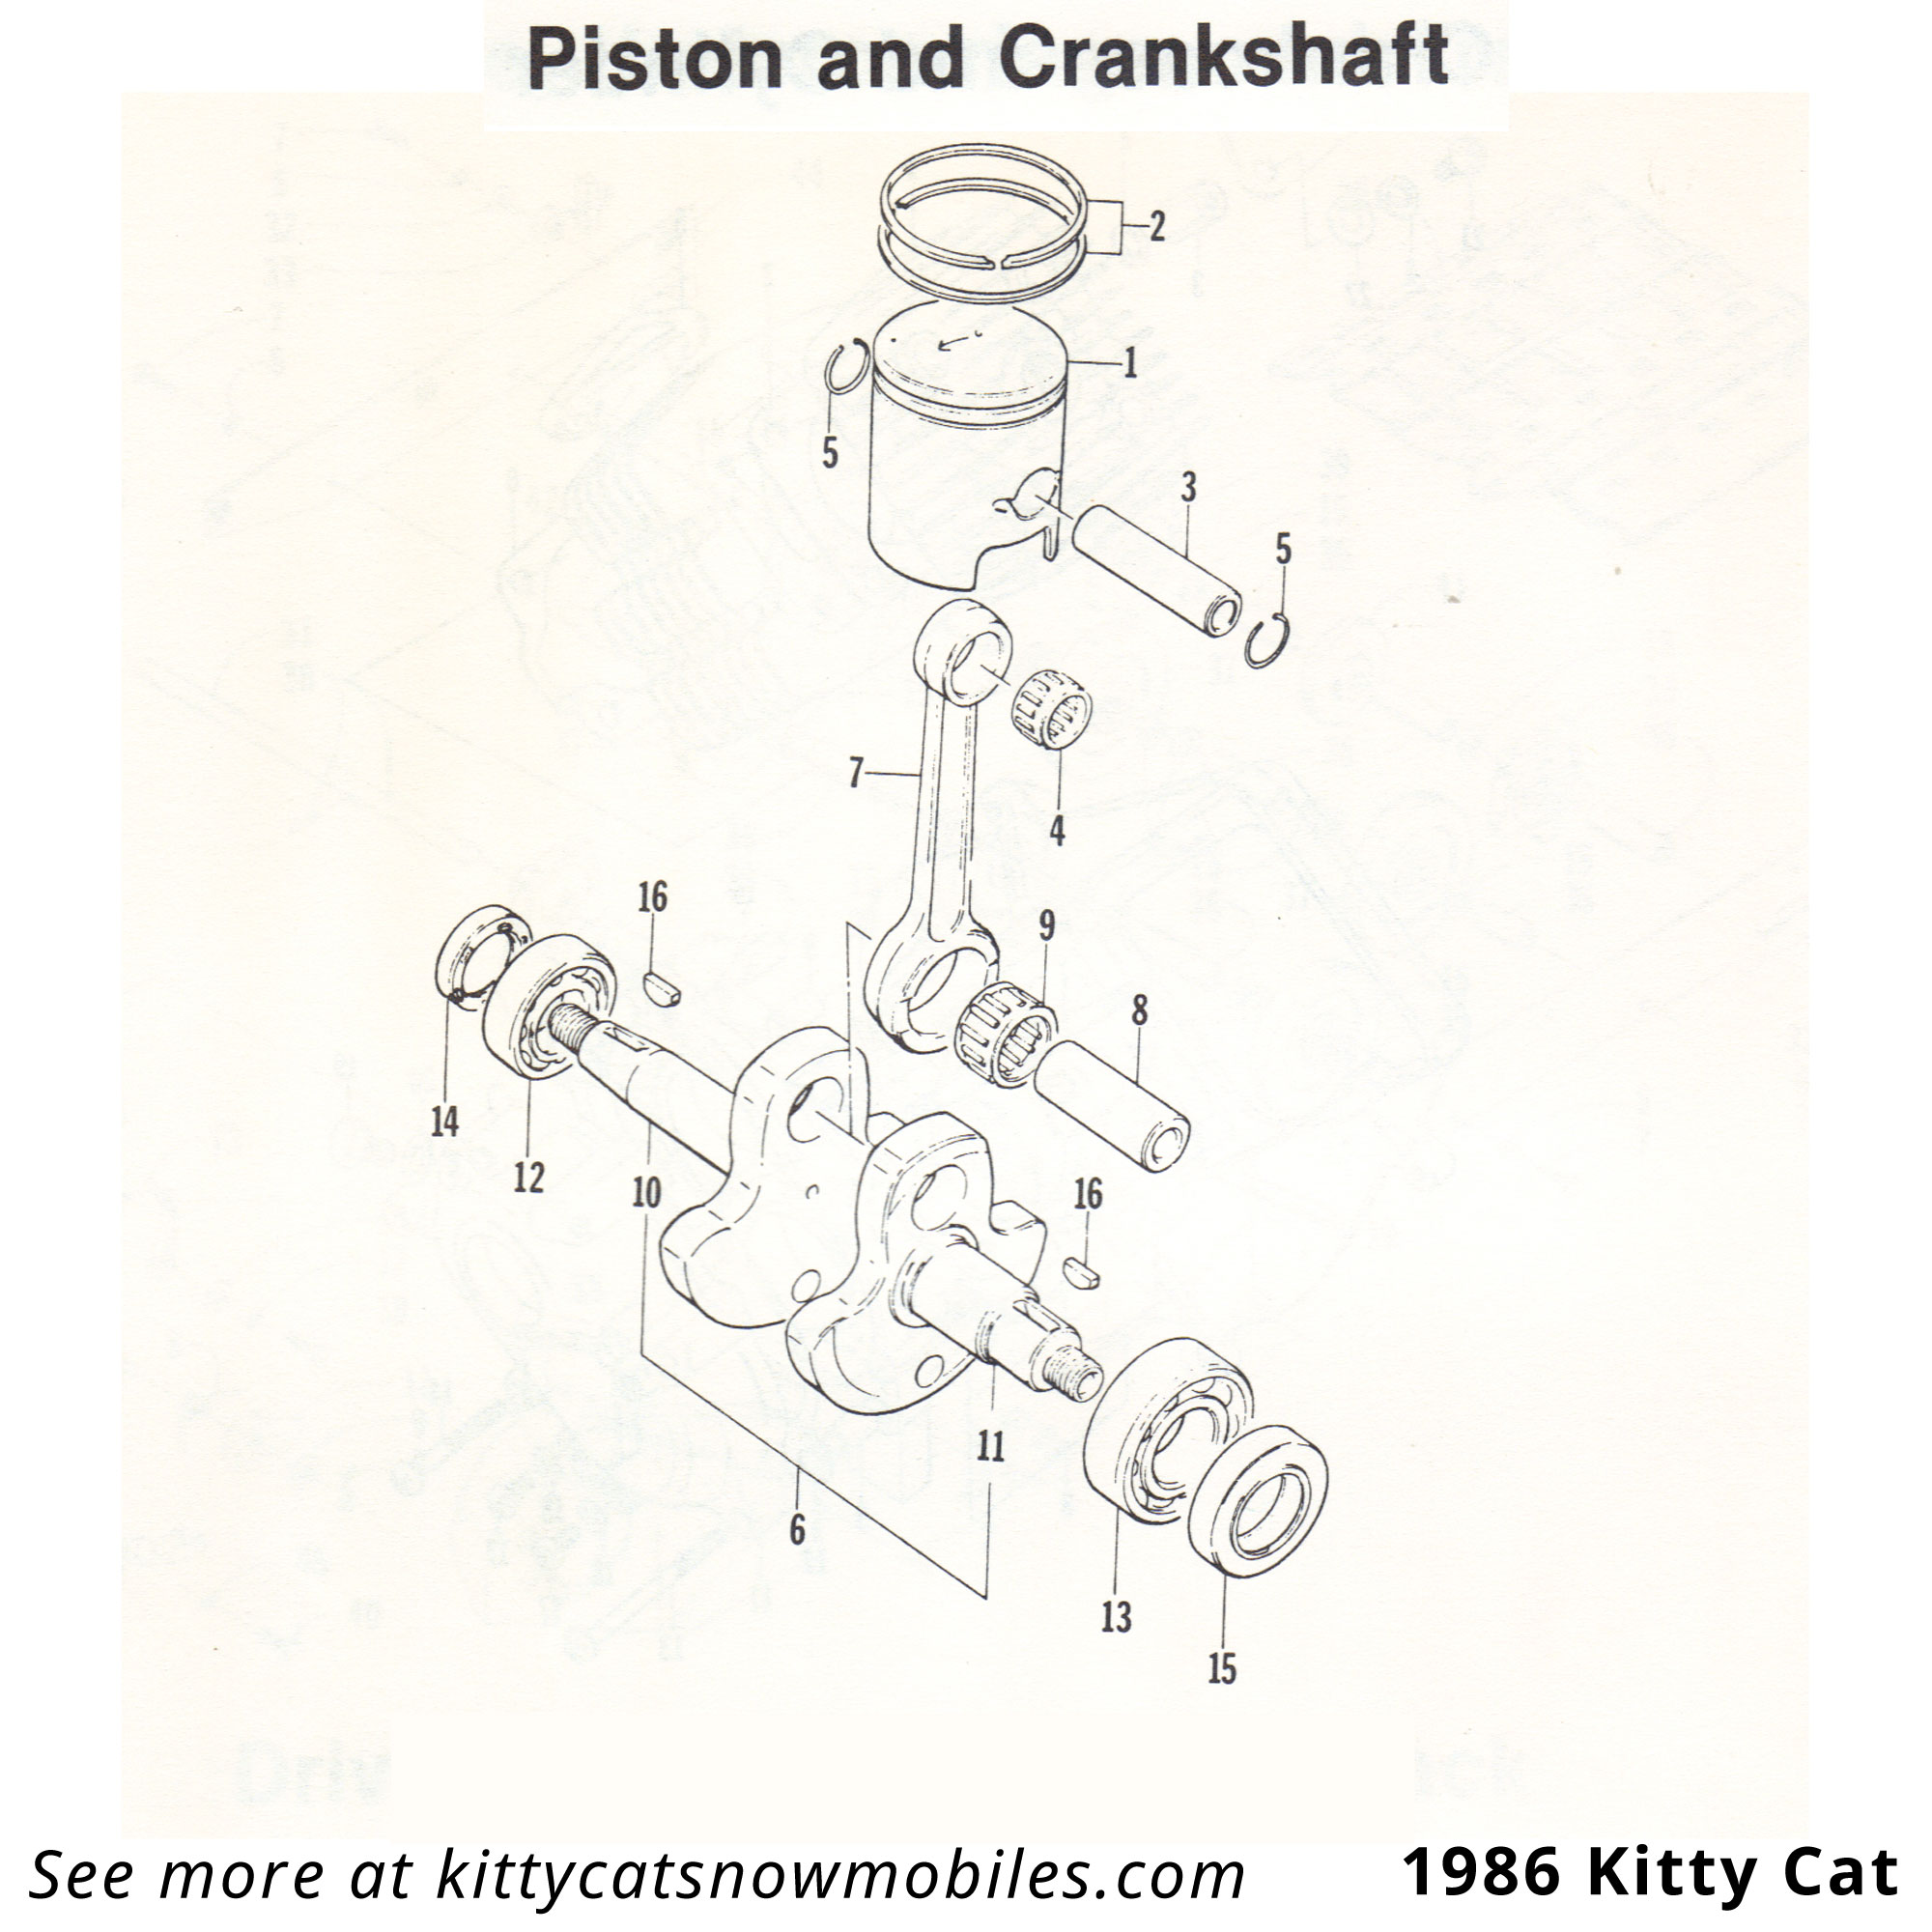 86 Kitty Cat Piston and Crankshaft Parts